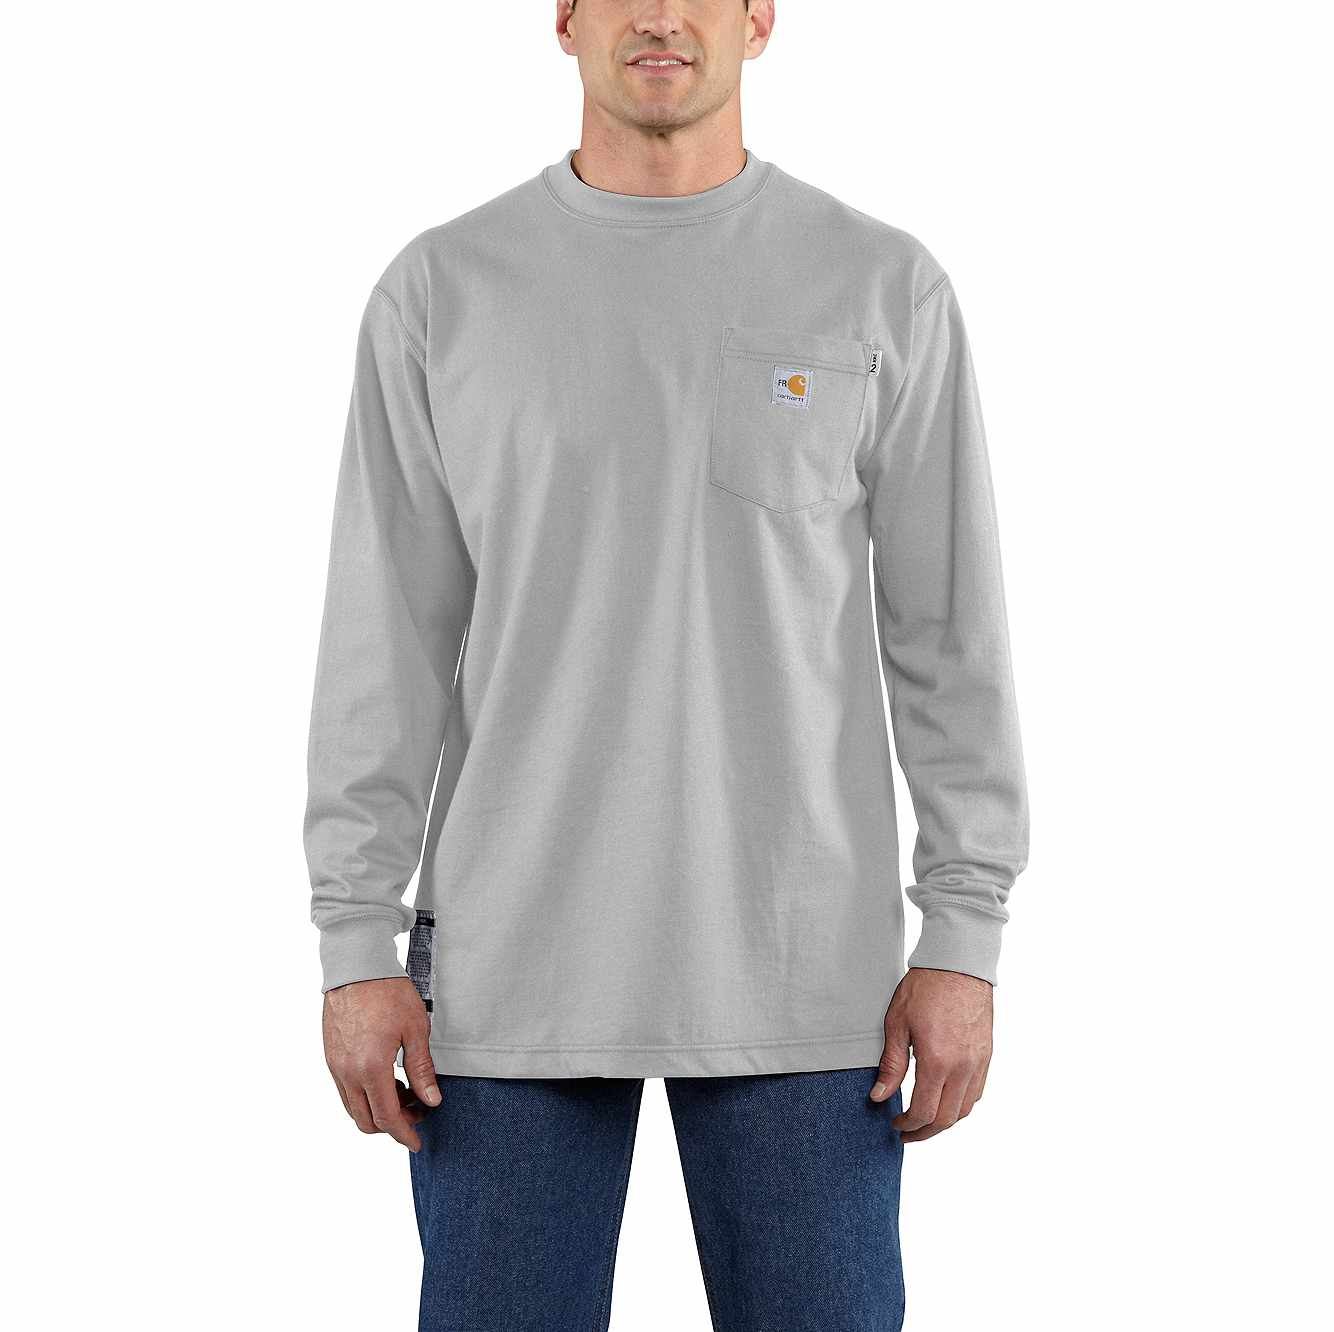 Picture of Flame-Resistant Carhartt Force® Cotton Long-Sleeve T-Shirt in Light Gray